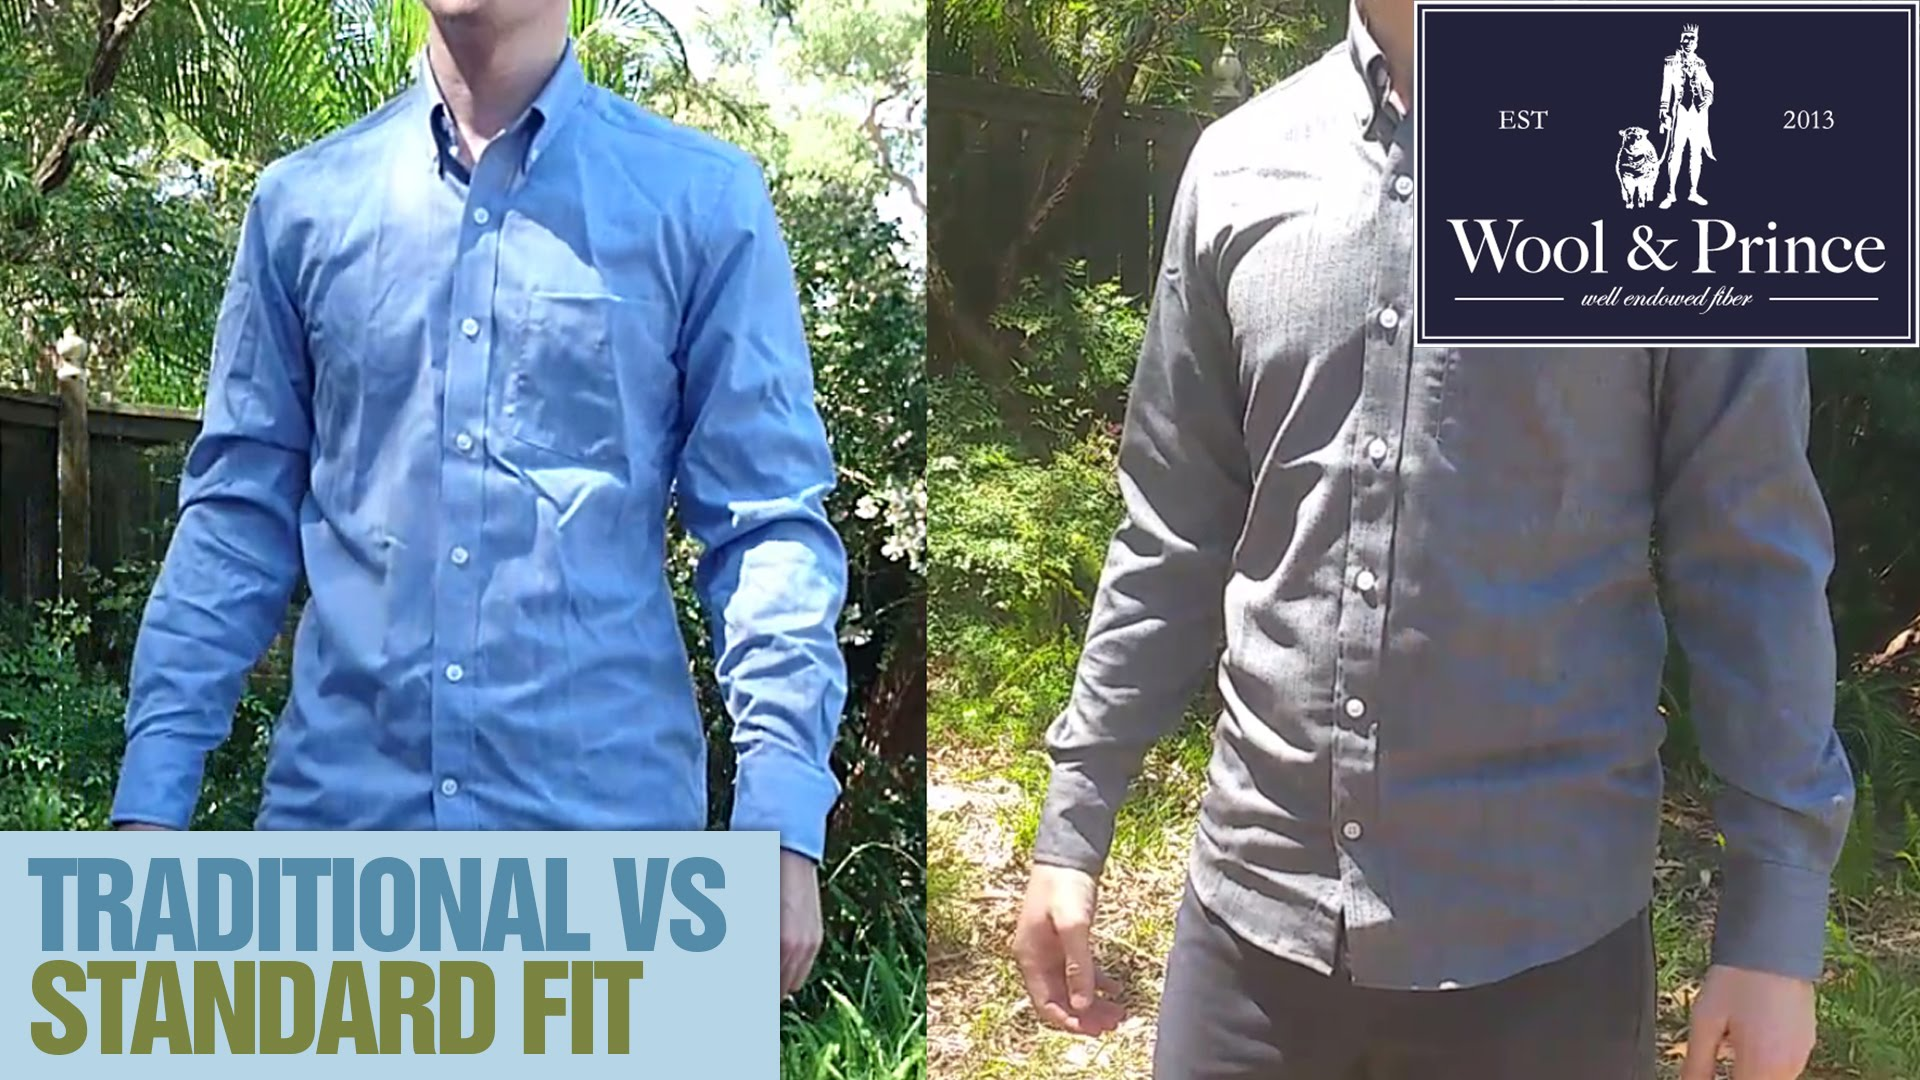 Wool-Prince-Traditional-Fit-vs-Standard